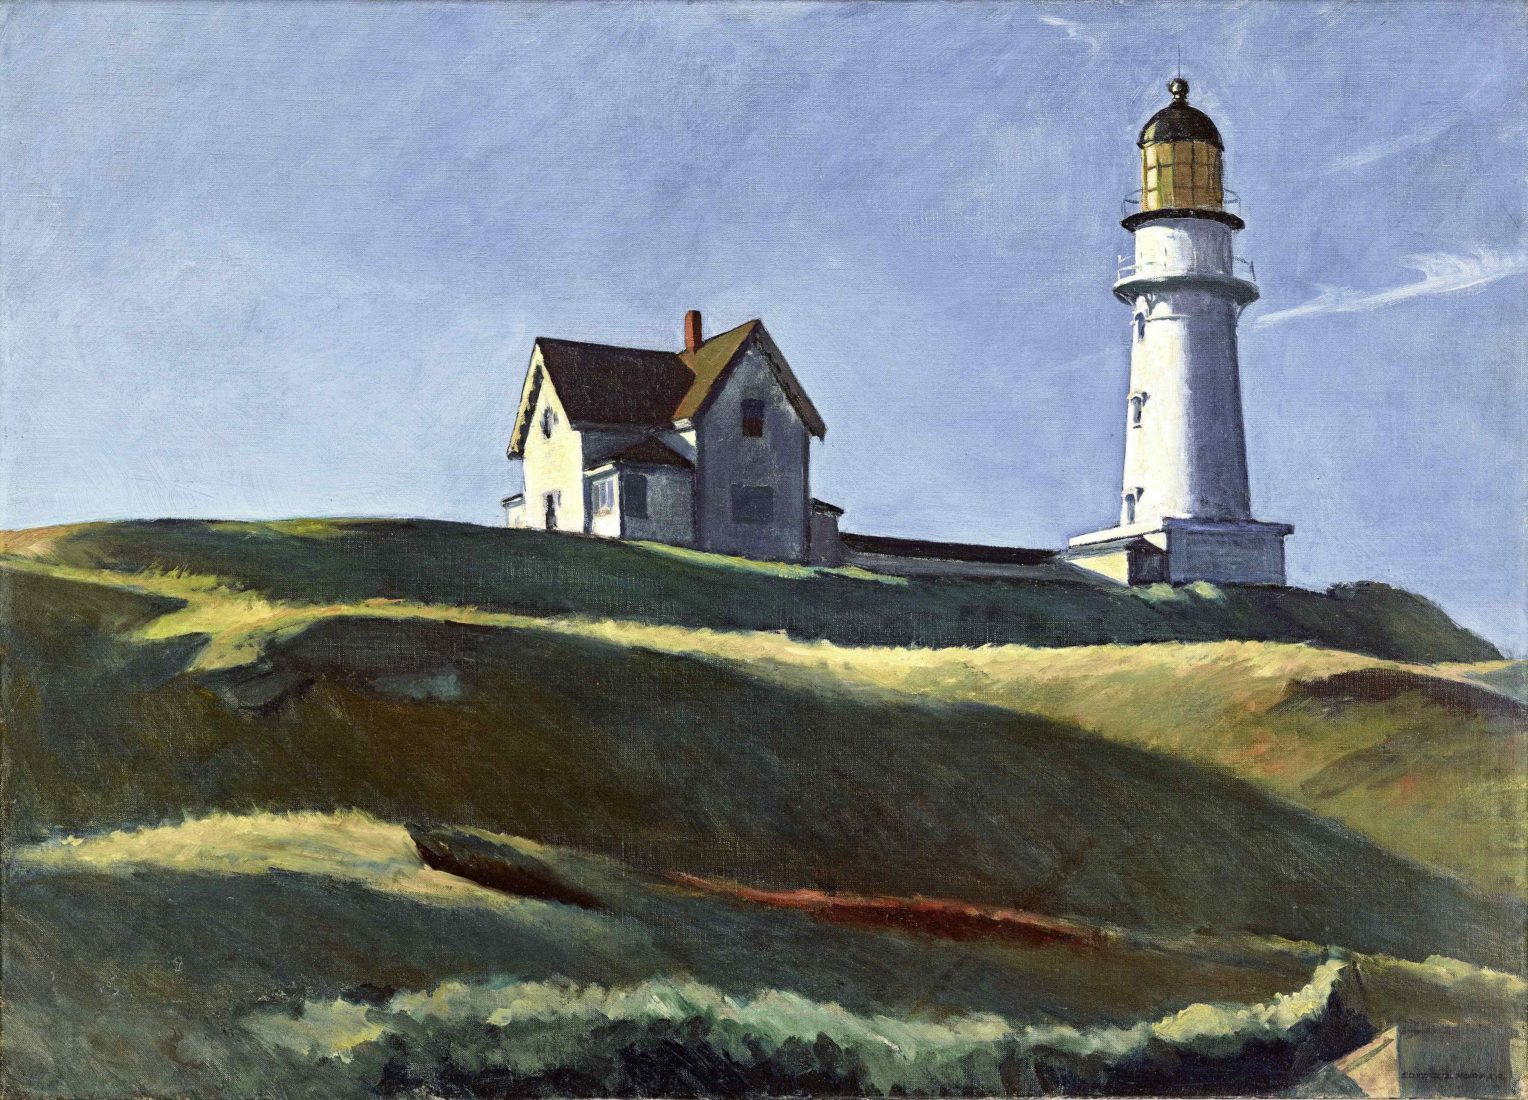 EDWARD HOPPER LIGHTHOUSE HILL, 1927